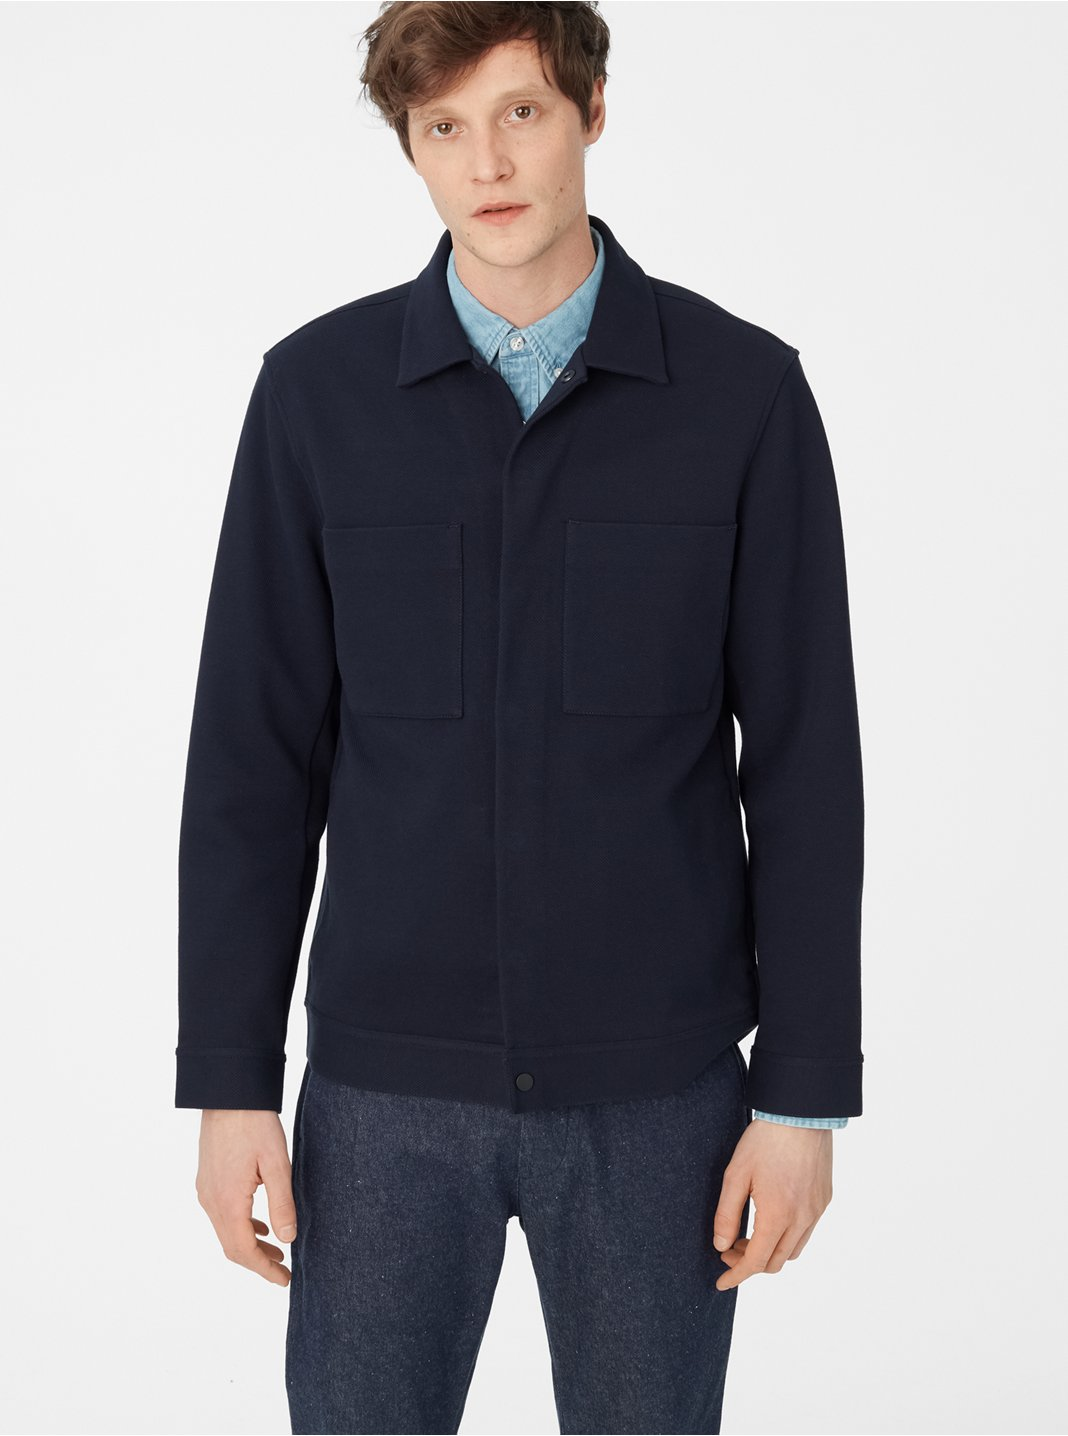 Twill Workwear Jacket